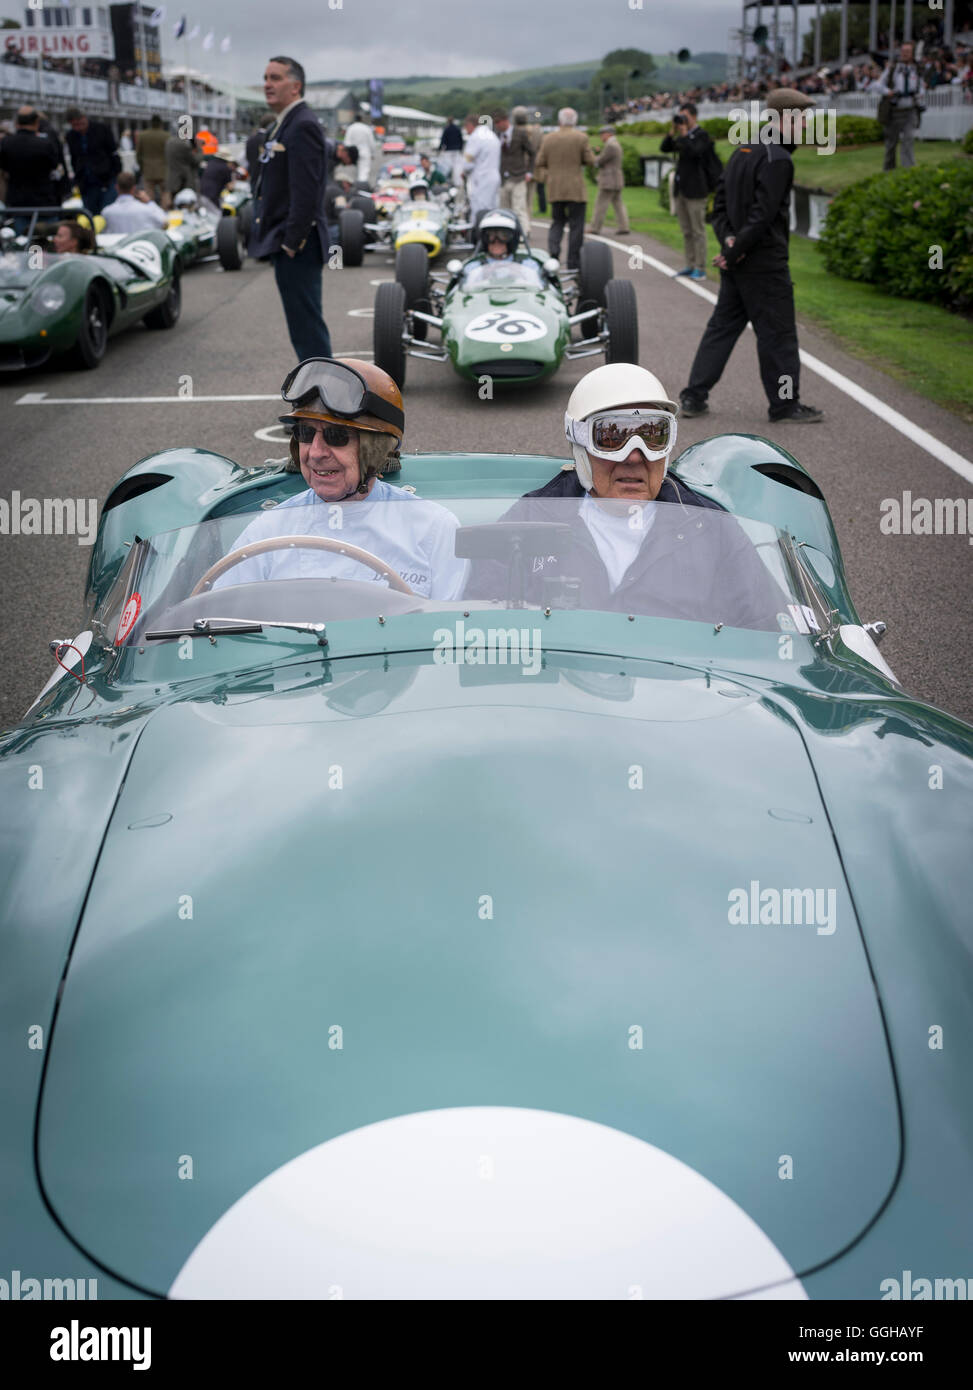 1959 Aston Martin DBR1 Fahrer Tony Brooks (L) und Sir Stirling Moss (R), Jim Clark Parade, Goodwood Revival, racing, Stockbild